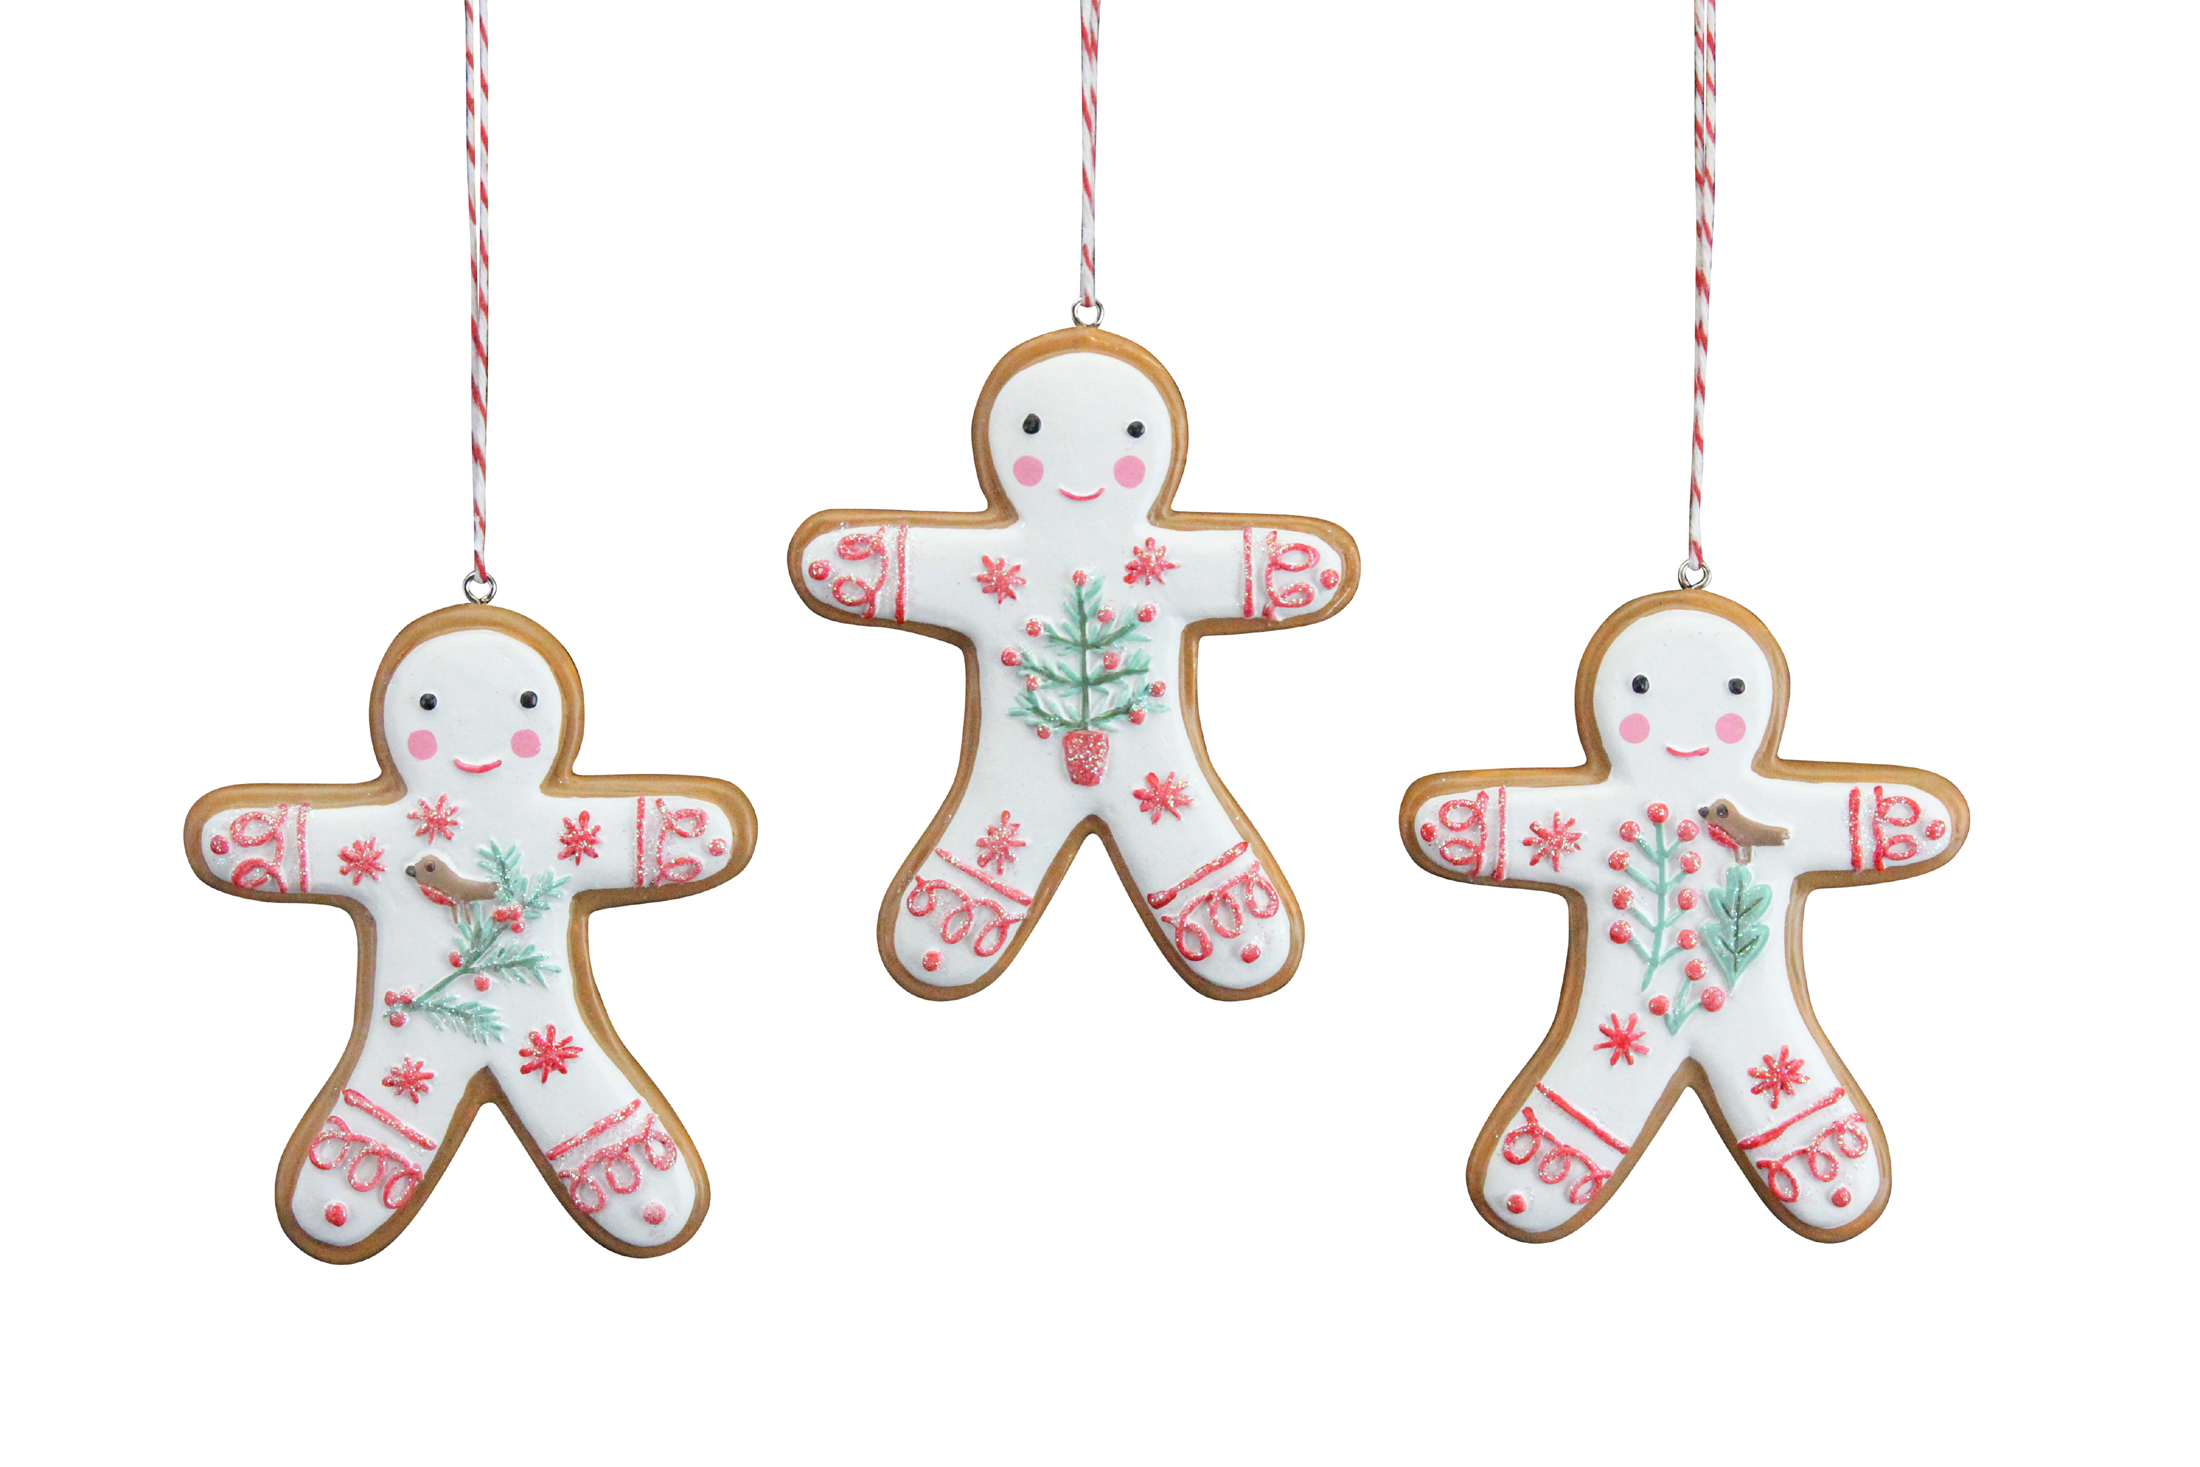 3 X Gisela Graham 'Iced' Gingerbread Men Hanging Christmas